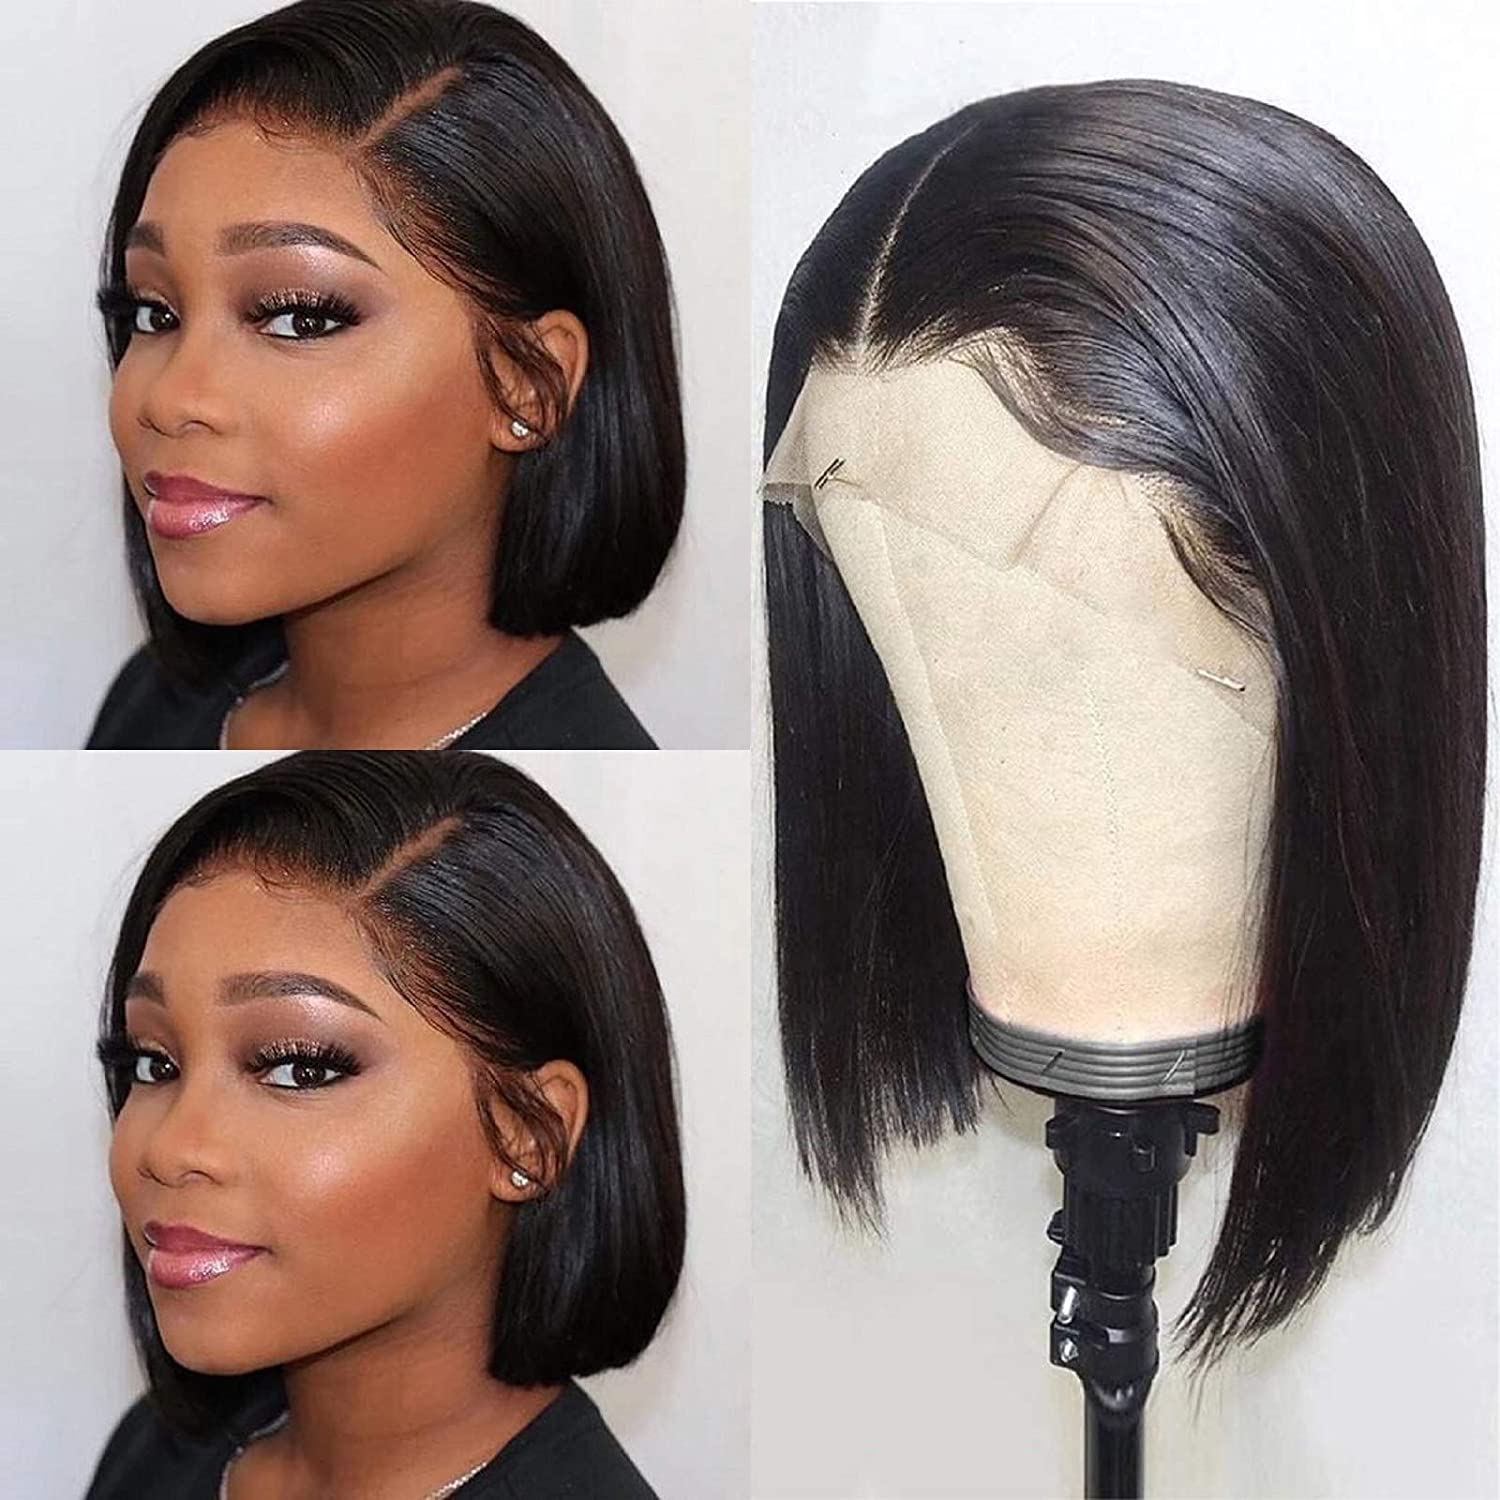 Amazon Com Human Hair Bob Wigs Lace Front 13x4 Short Bob Wig 9a Brazilian Remy Hair Lace Frontal Wigs Straight Human Hair Bob Wigs 130 Density 8 Inch Natural Color Beauty